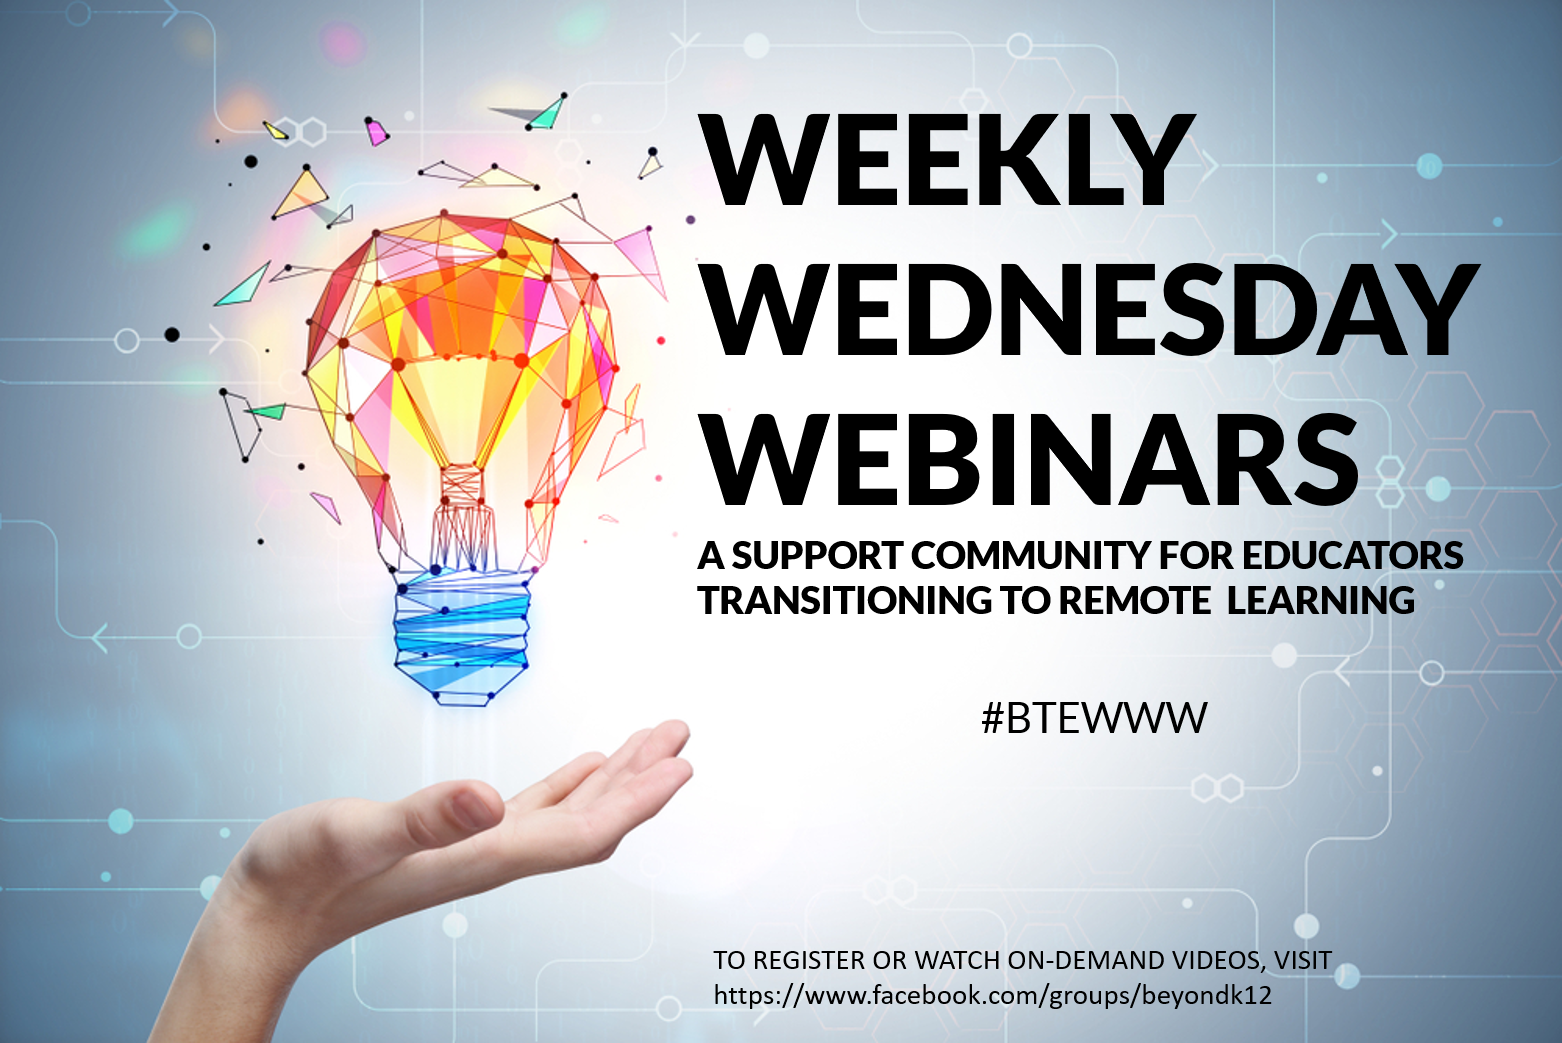 WEEKLY WEDNESDAY WEBINARS ONLINE DISTANCE LEARNING RESOURCES FOR TEACHERS